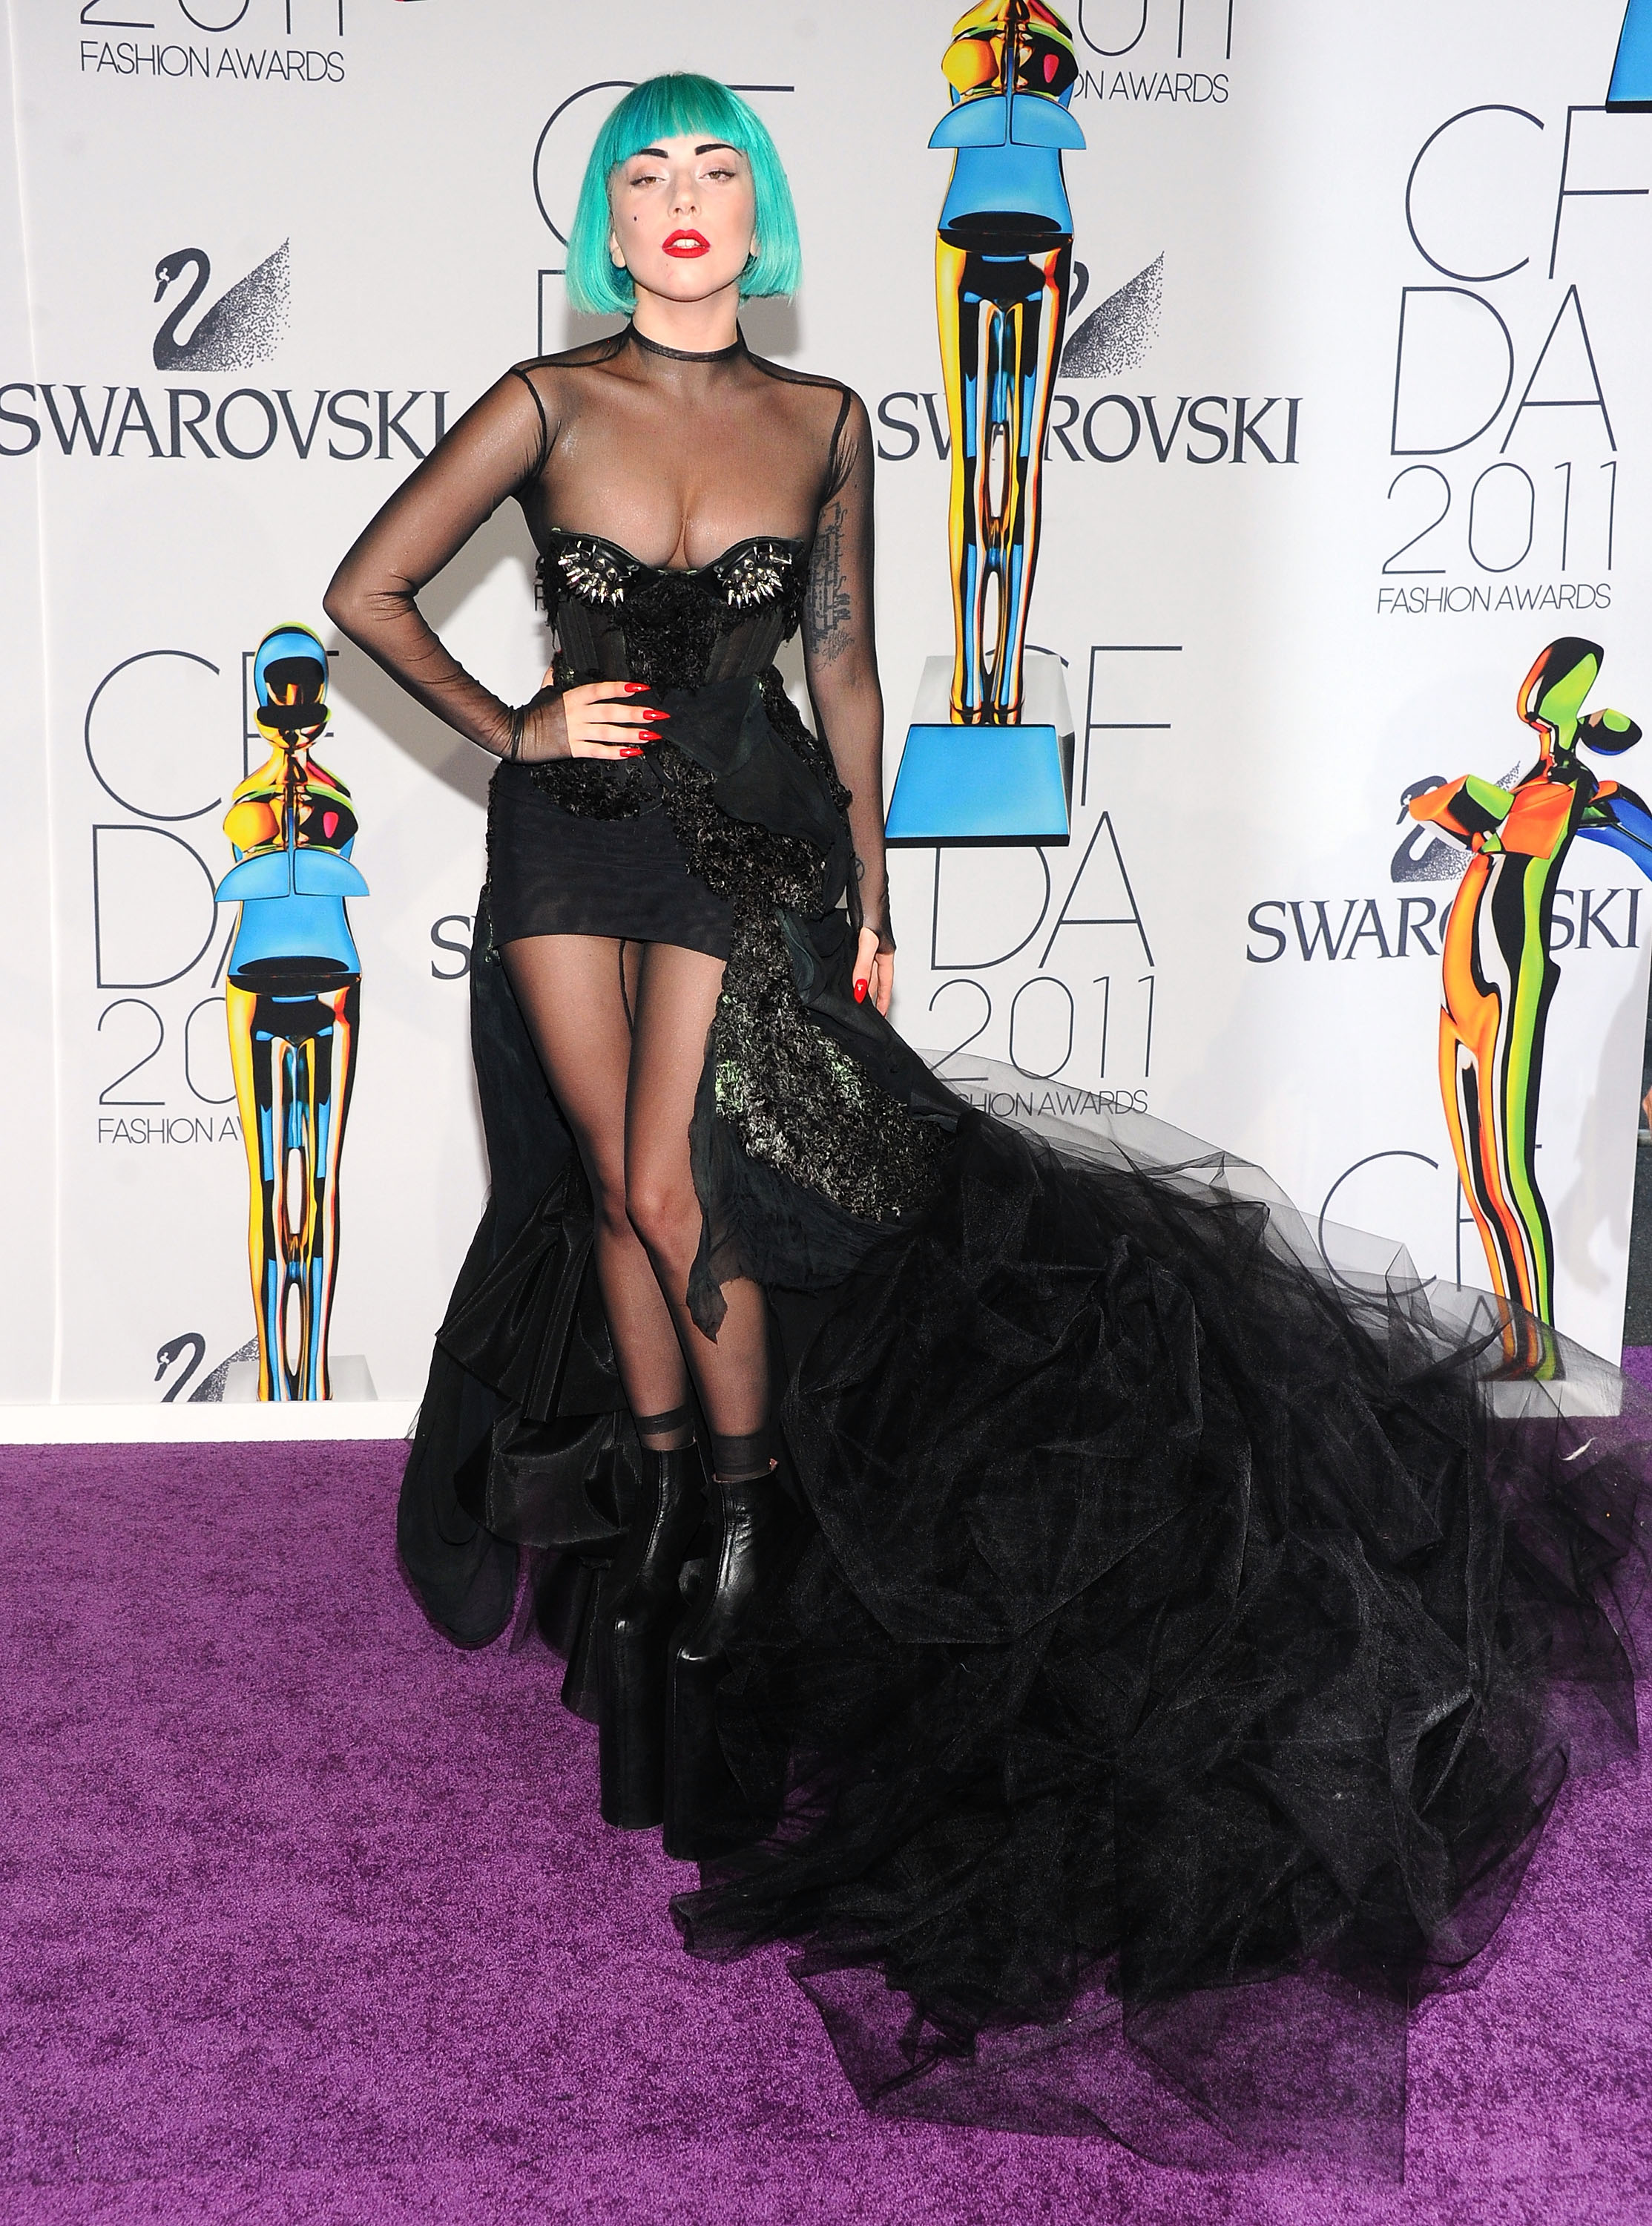 Fashion, Celebrities And Wardrobe Malfunctions At The CFDA